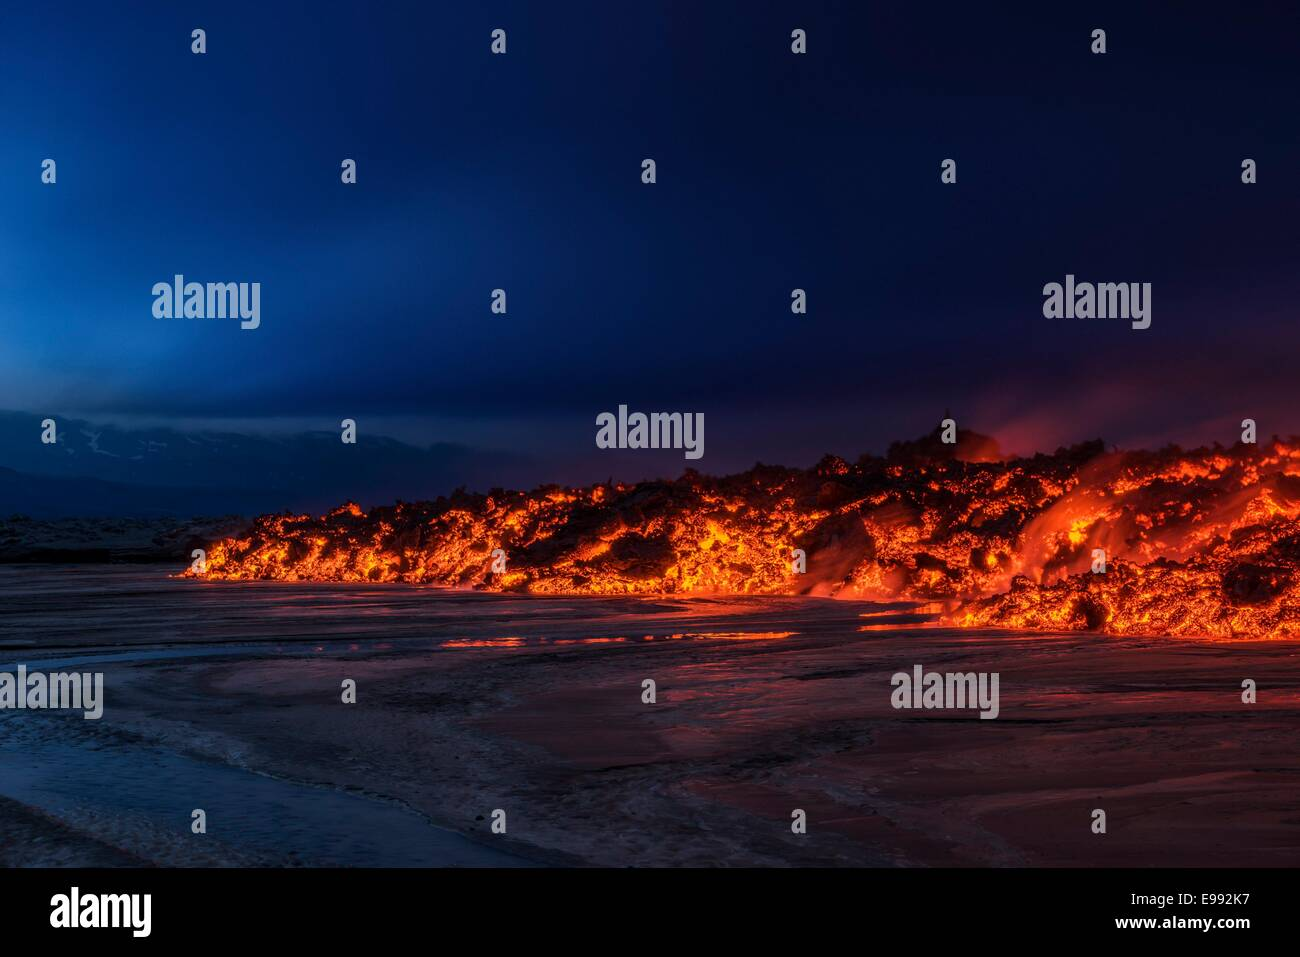 Glowing lava from the eruption at the Holuhraun Fissure, near the Bardarbunga Volcano, Iceland - Stock Image